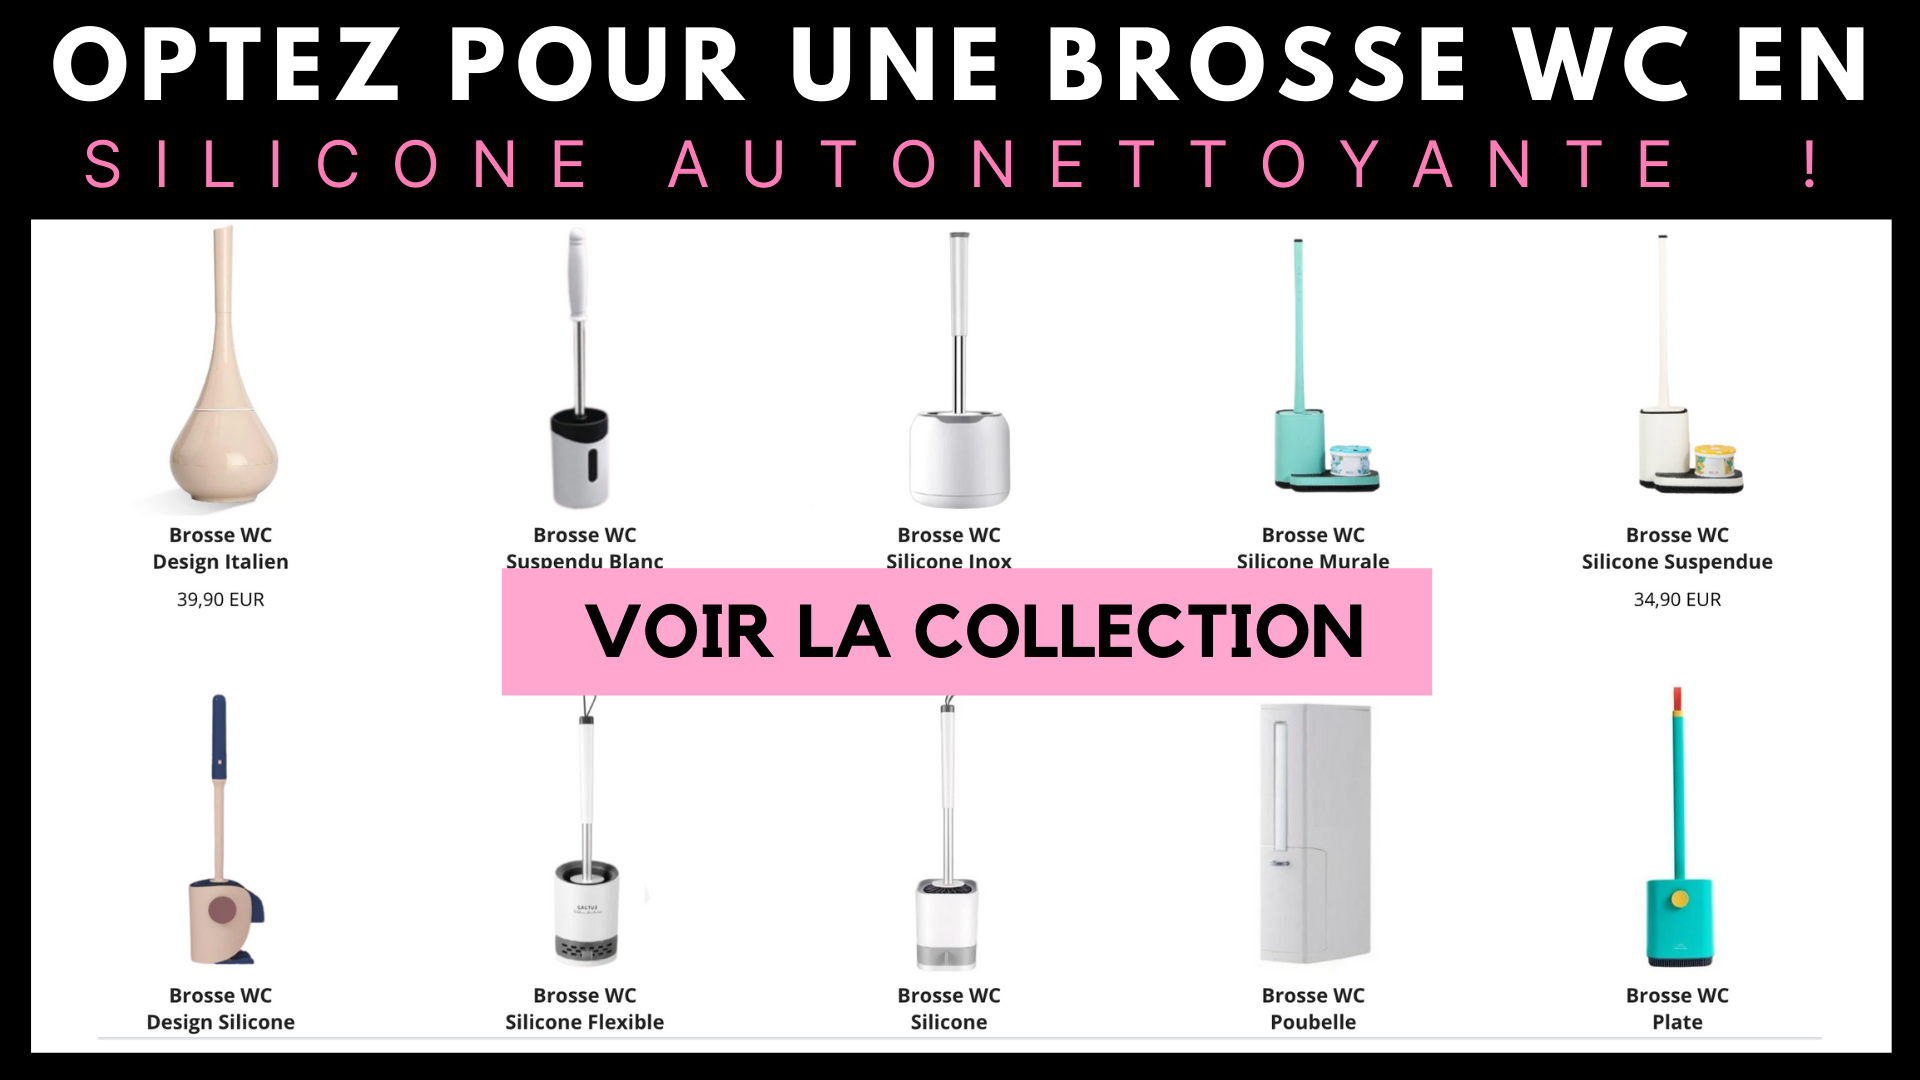 Collection brosse wc silicone